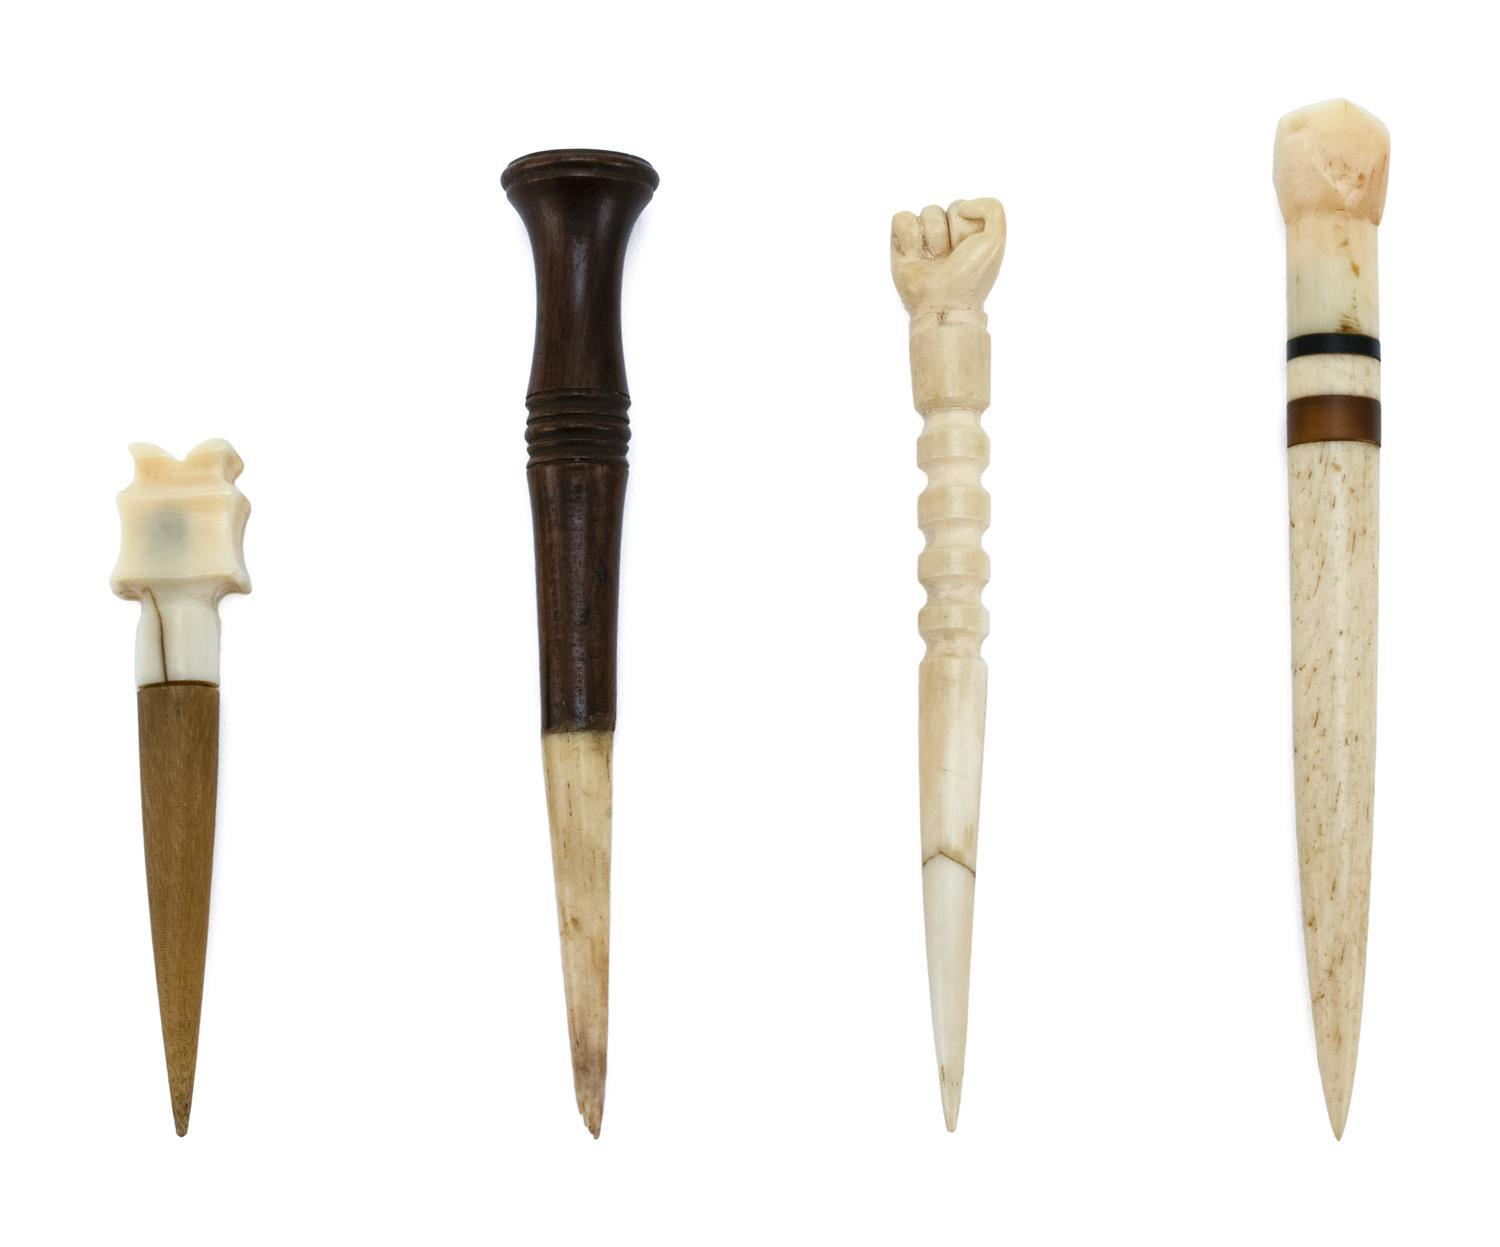 FOUR WOOD, WHALEBONE, HORN AND WHALE IVORY BODKINS One with clenched fist finial, one with faceted finial, one with turned wood fini...